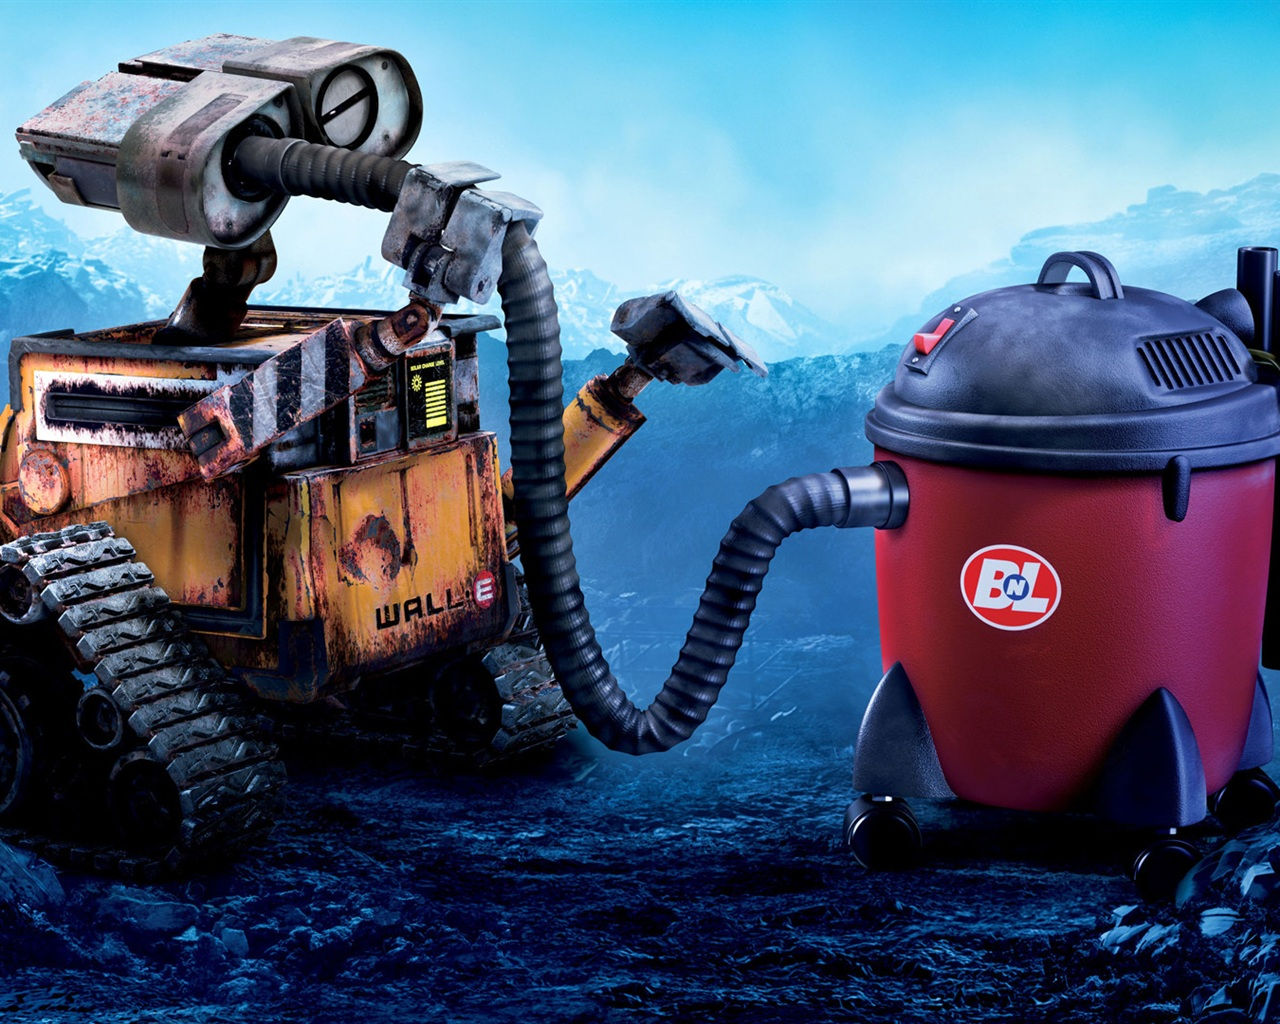 Wallpaper Wall E Robot And Vacuum Cleaner 1920x1080 Full Hd